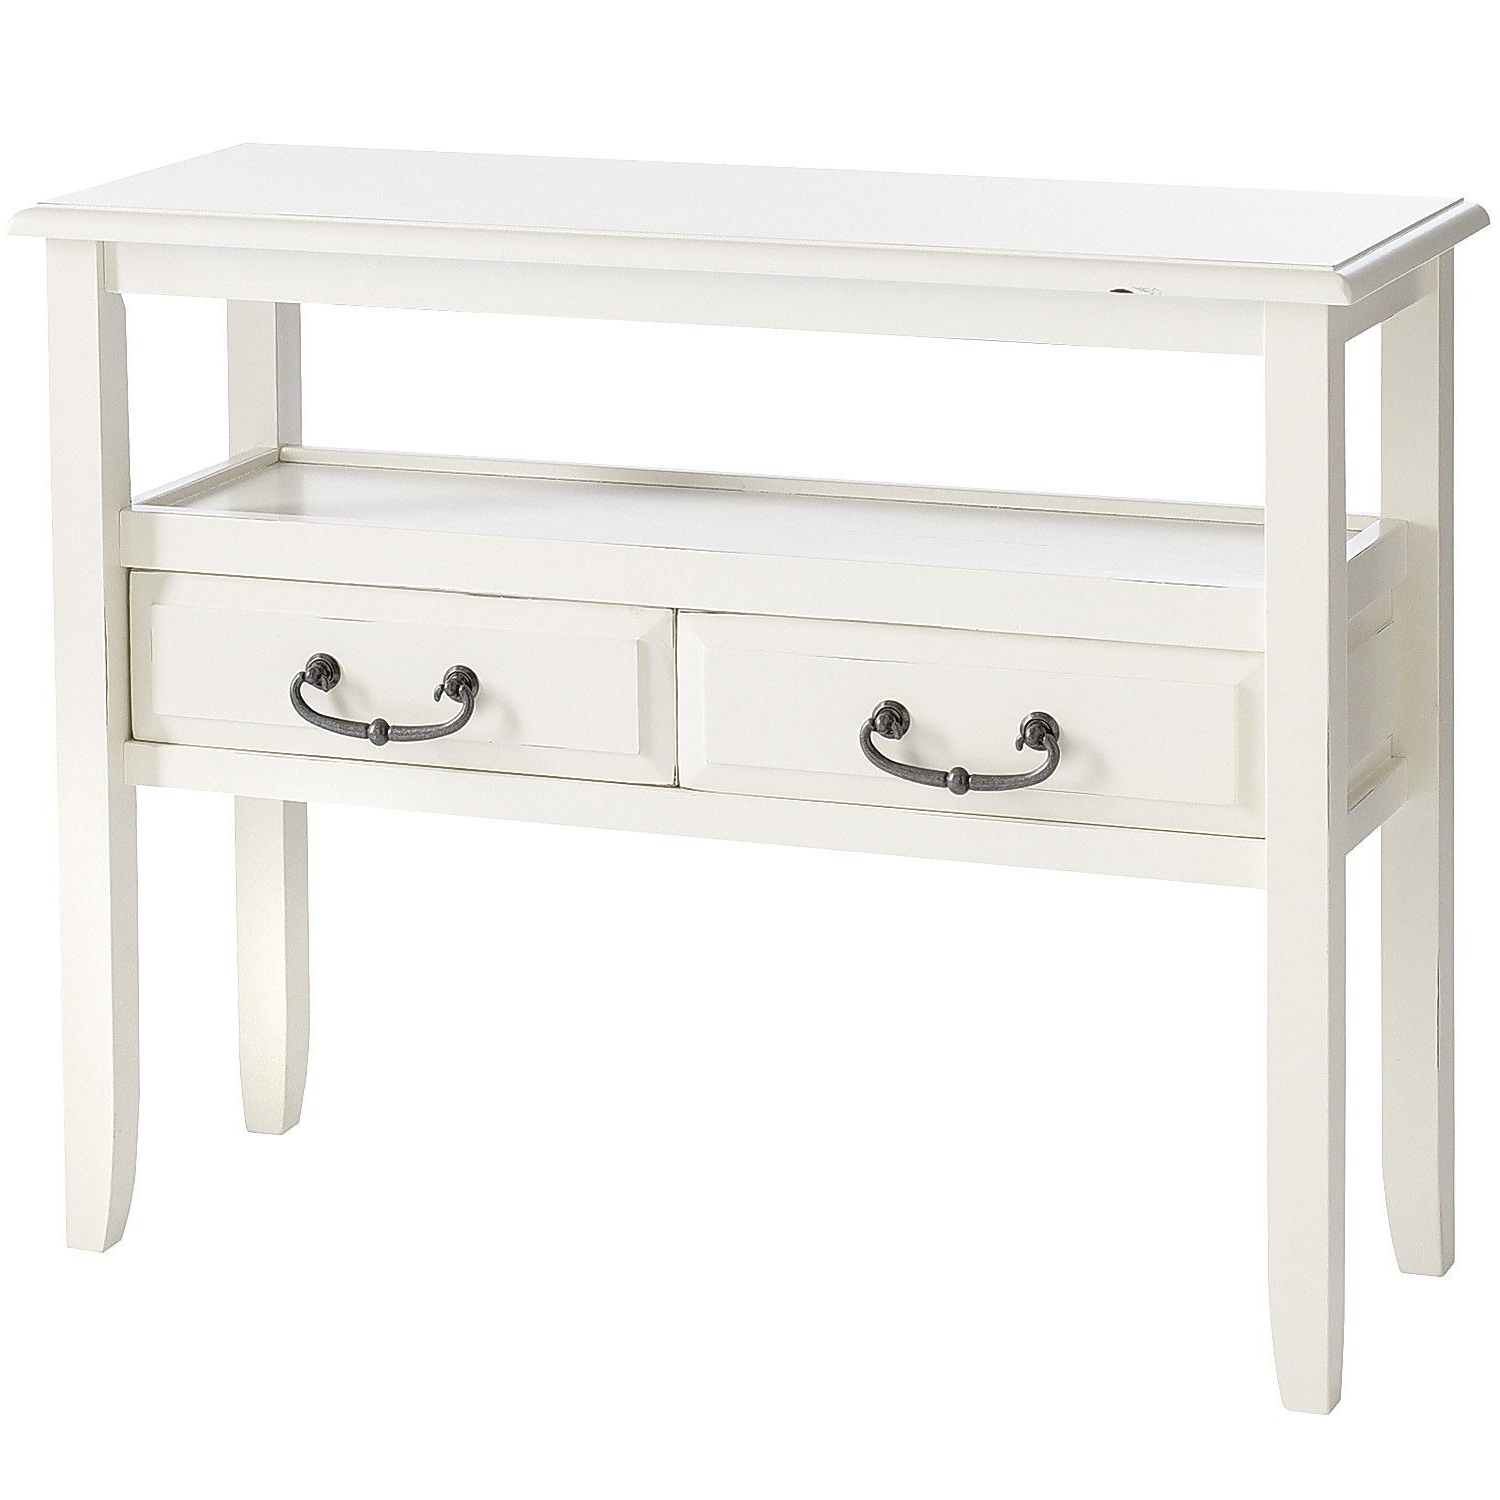 Anywhere Antique White Console Table With Pull Handles | Home Sweet Throughout Switch Console Tables (Gallery 6 of 20)